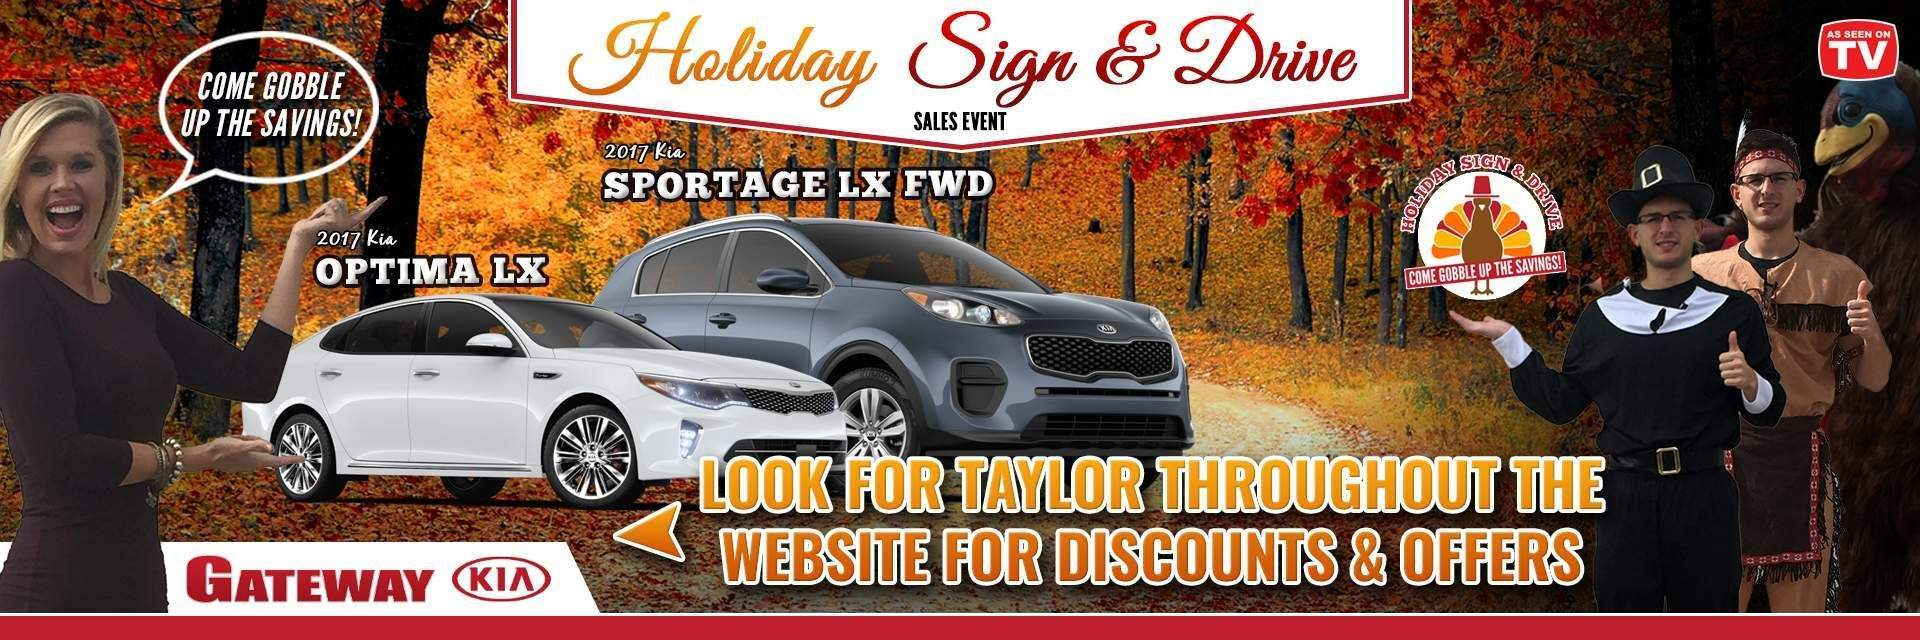 Holiday Sign and Drive